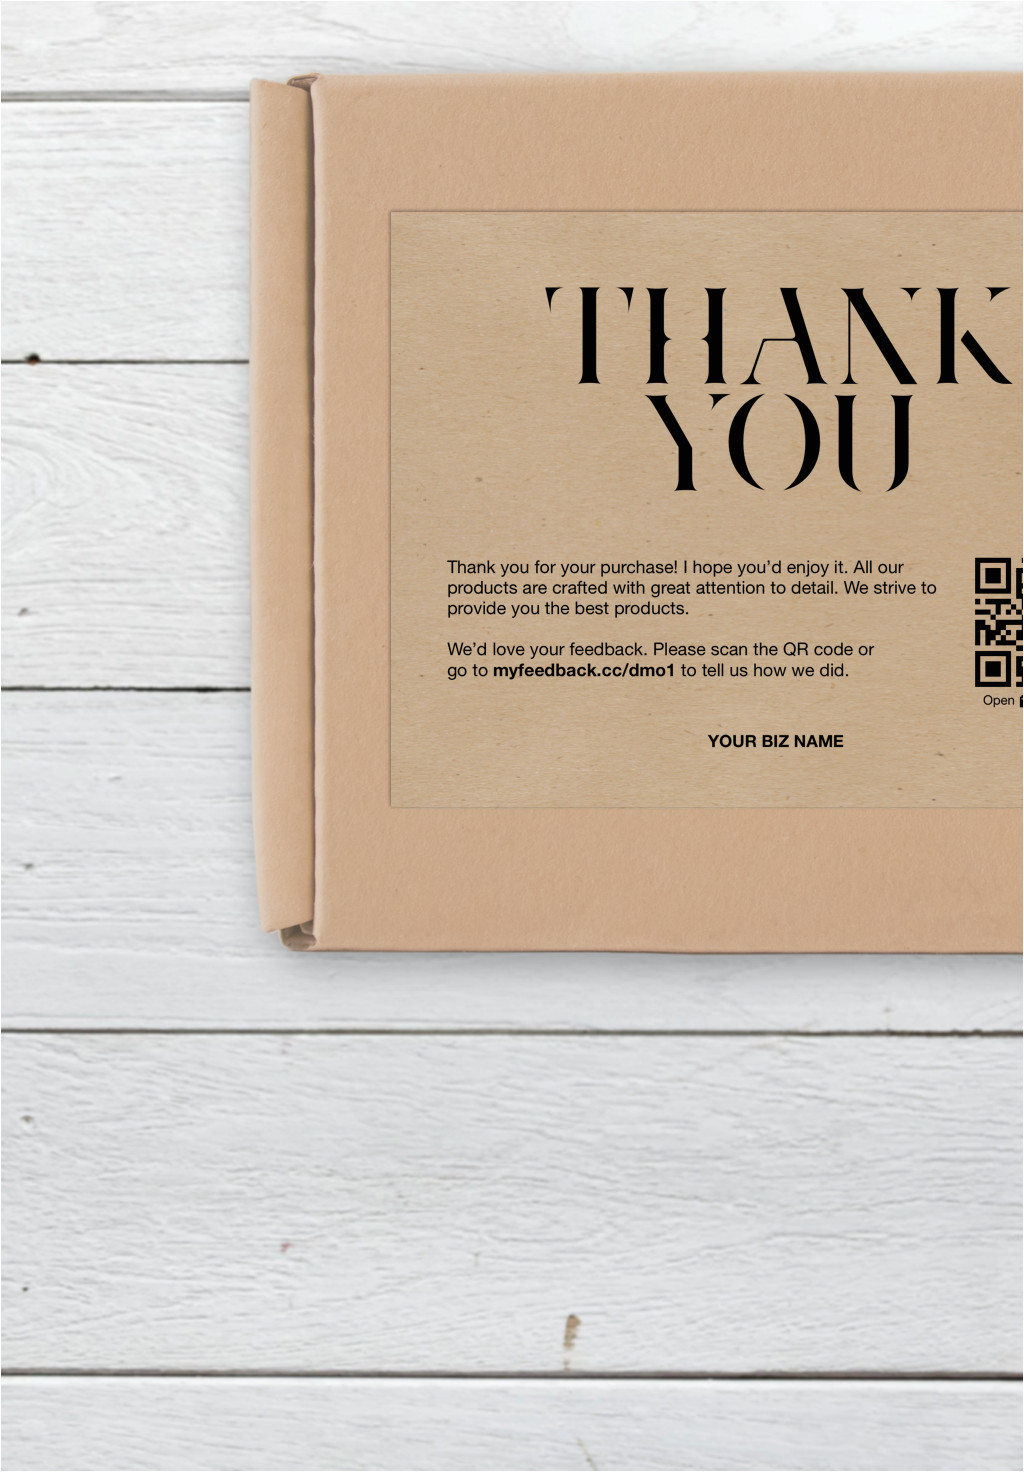 Thank You for the Thank You Card Business Thank You Card Thank You for Your Purchase